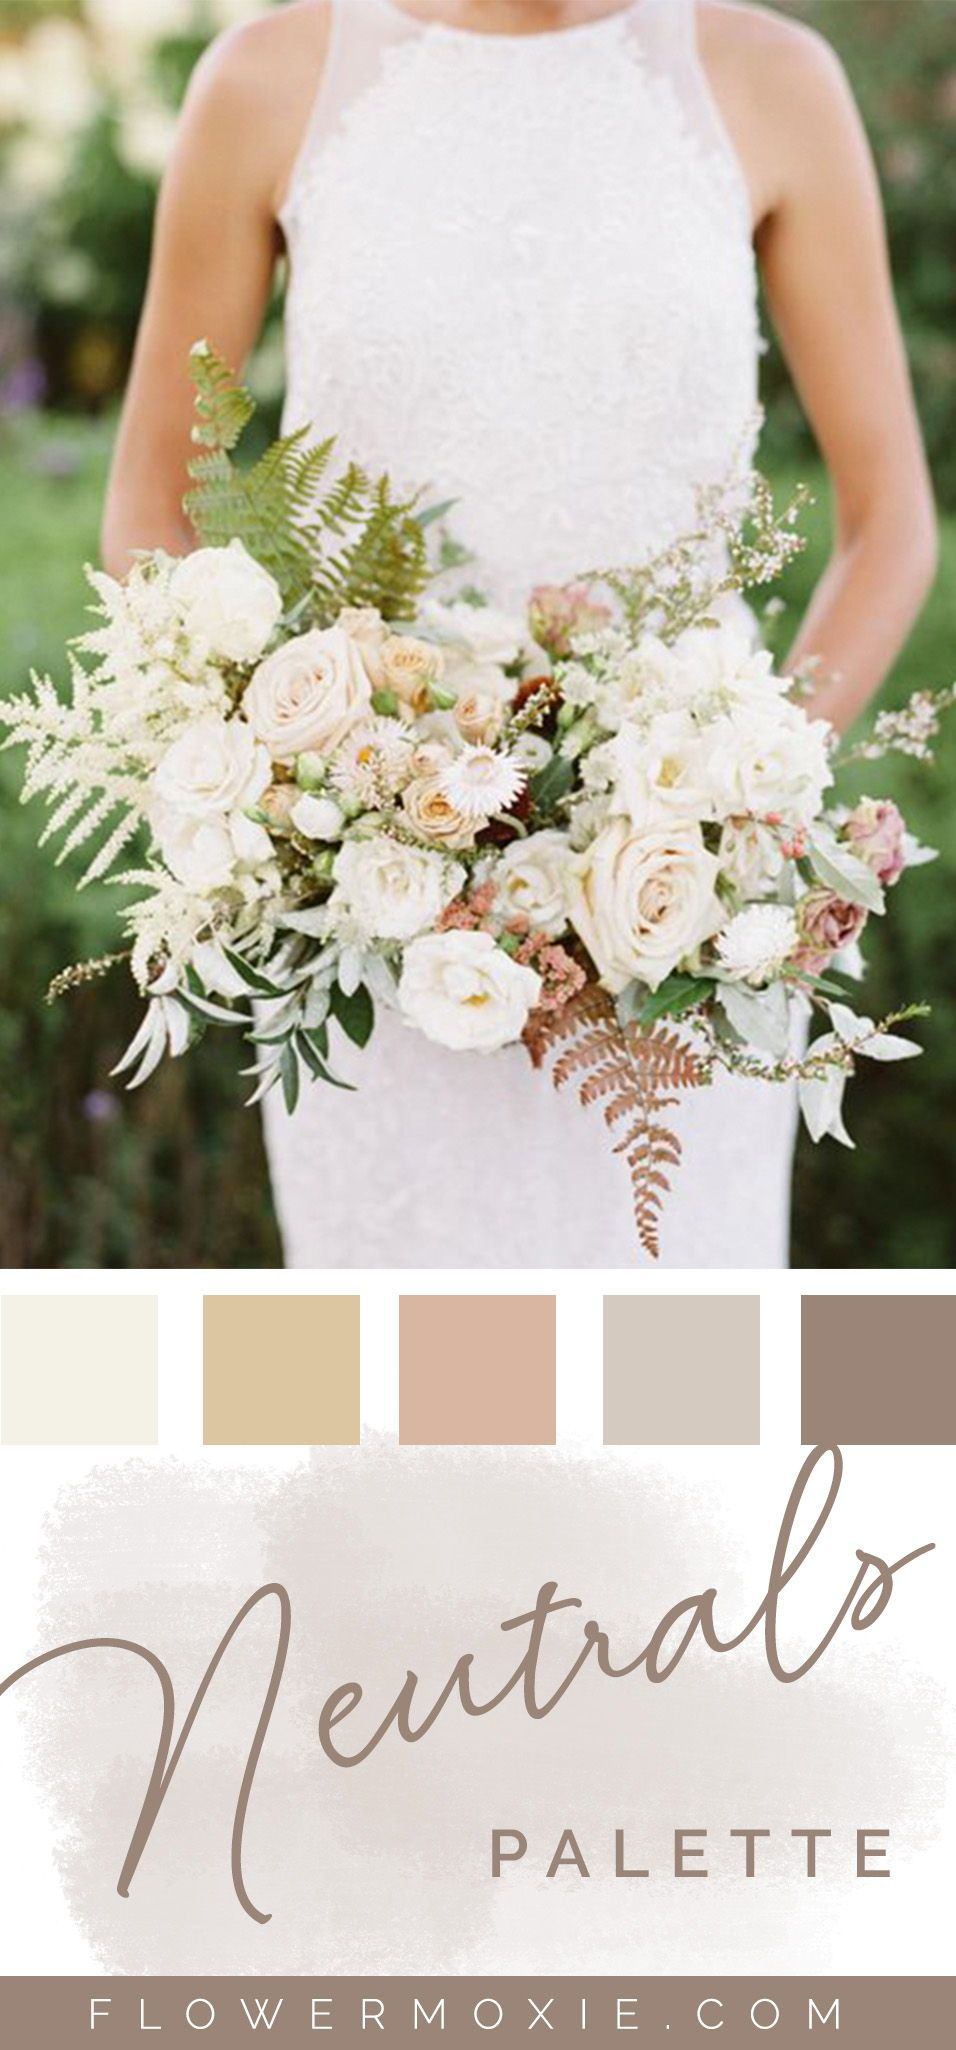 Get Inspired By Our Wedding Flower Packages Mix Match Flowers To Achieve The Look You Wan Bulk Wedding Flowers Online Wedding Flowers Diy Bridesmaid Bouquet